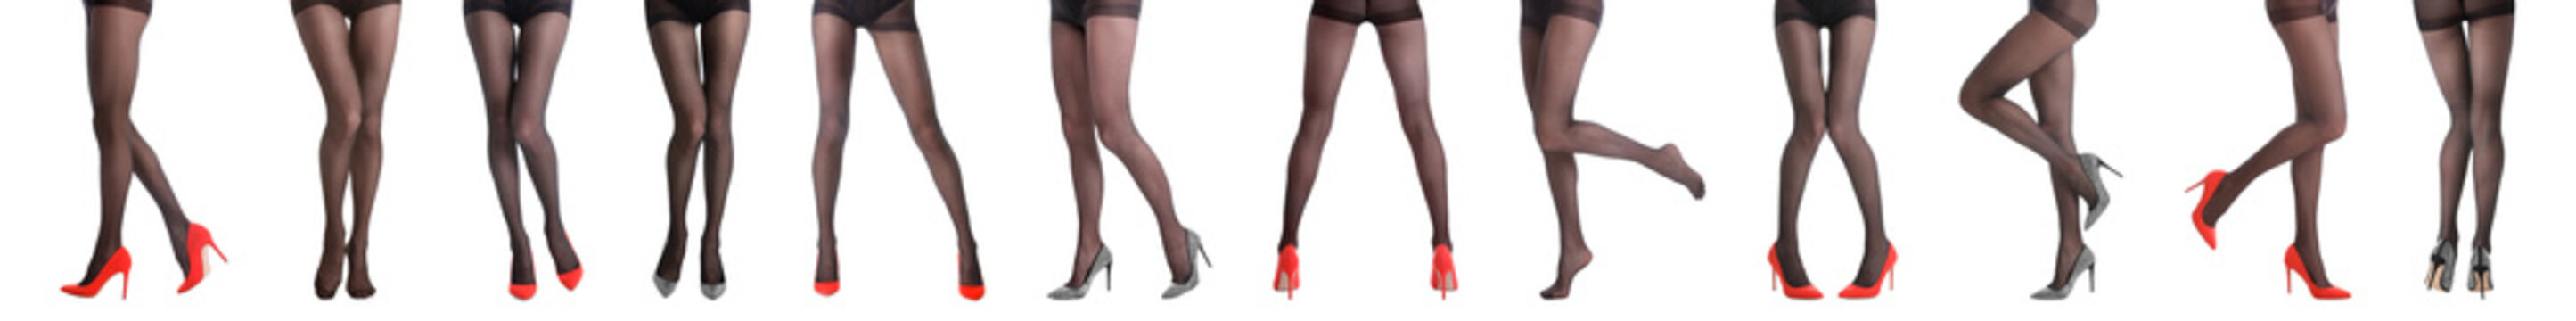 Collage of women wearing tights on white background, closeup of legs. Banner design